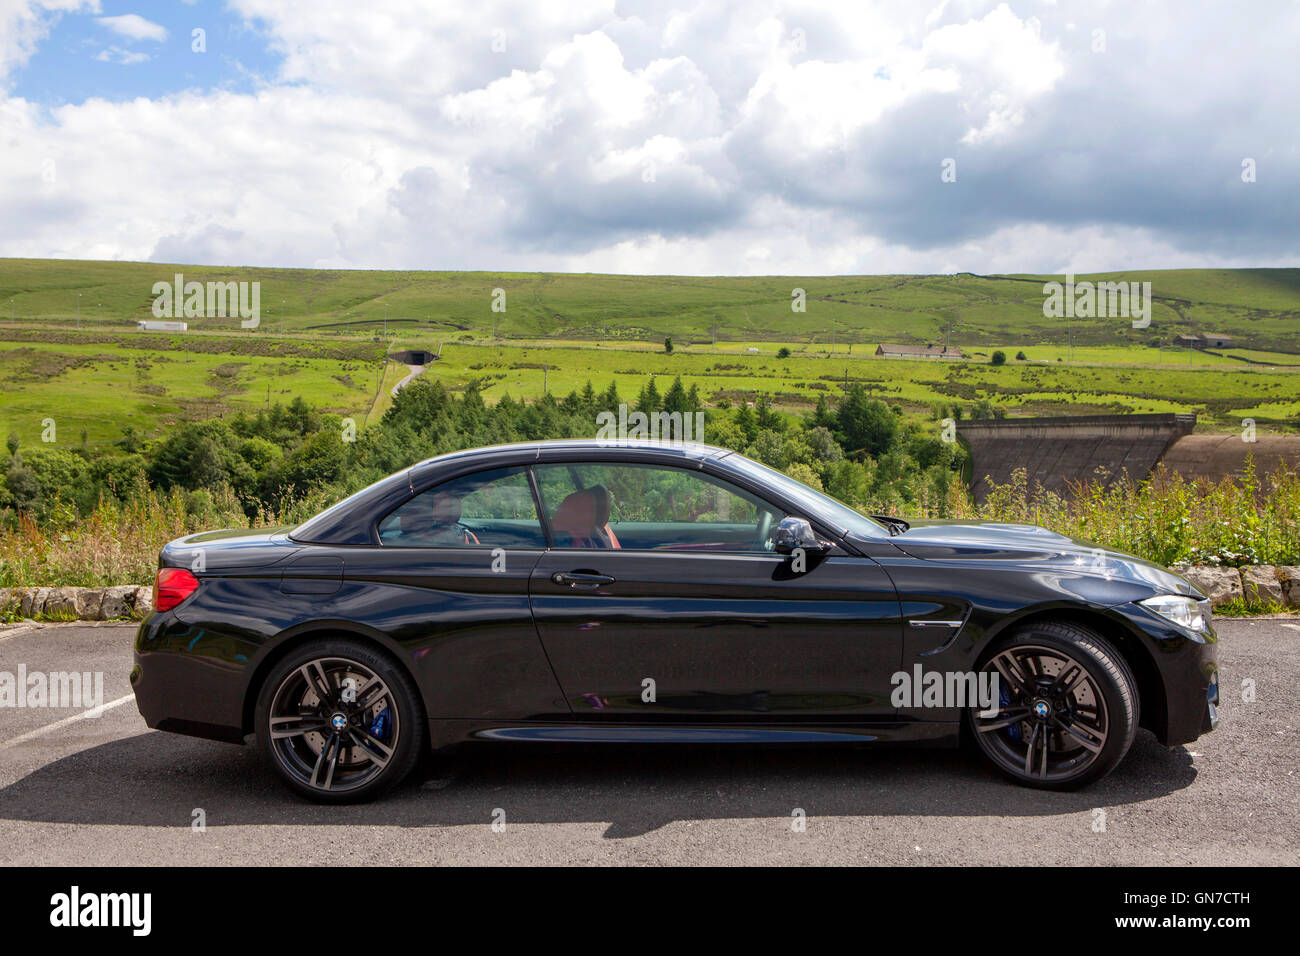 f83 black bmw m4 convertible 2 door coupe with red leather parked in stock photo 116333745 alamy. Black Bedroom Furniture Sets. Home Design Ideas